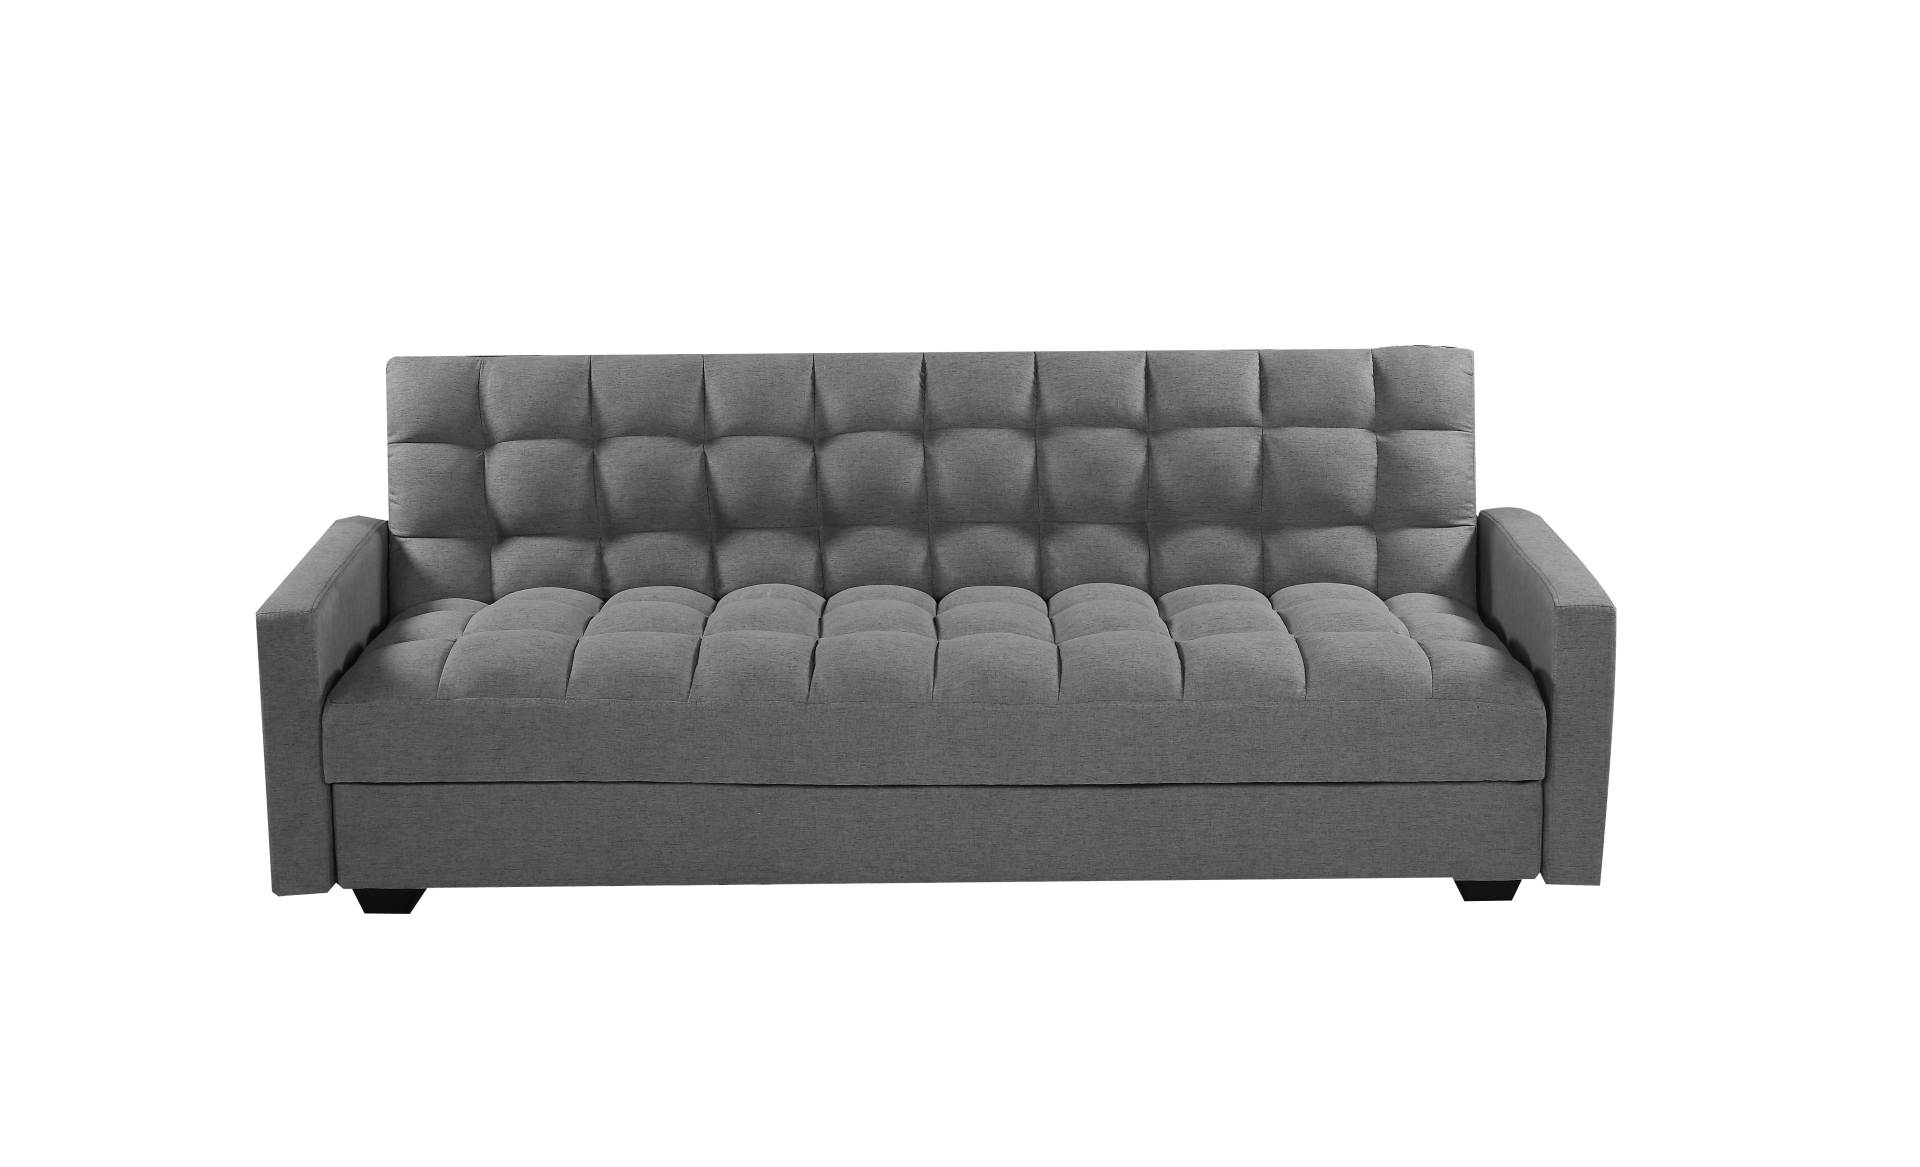 Sara 3 In 1 Sofa Bed Storage Grey